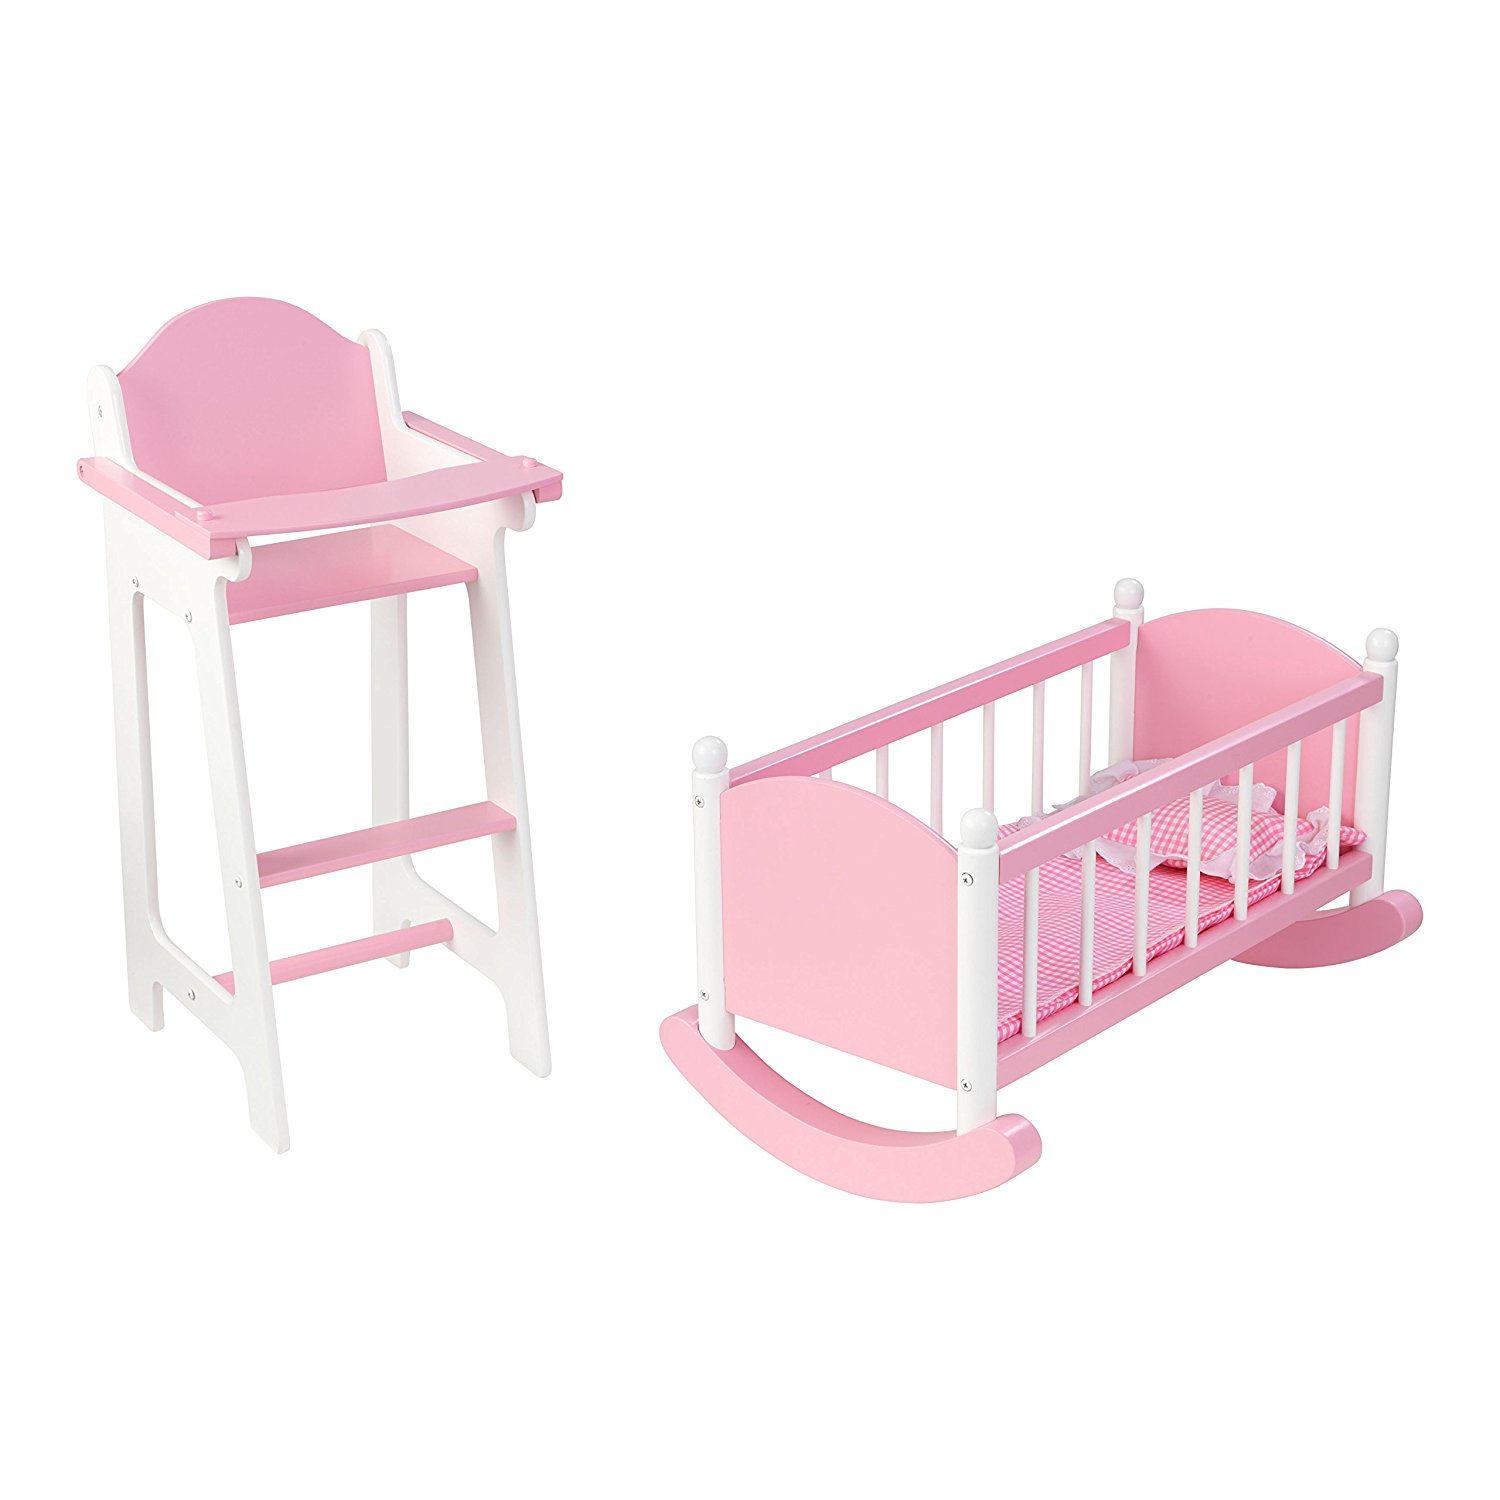 Buy KidKraft Darling Doll Furniture Set, Pink in Cheap Price ...